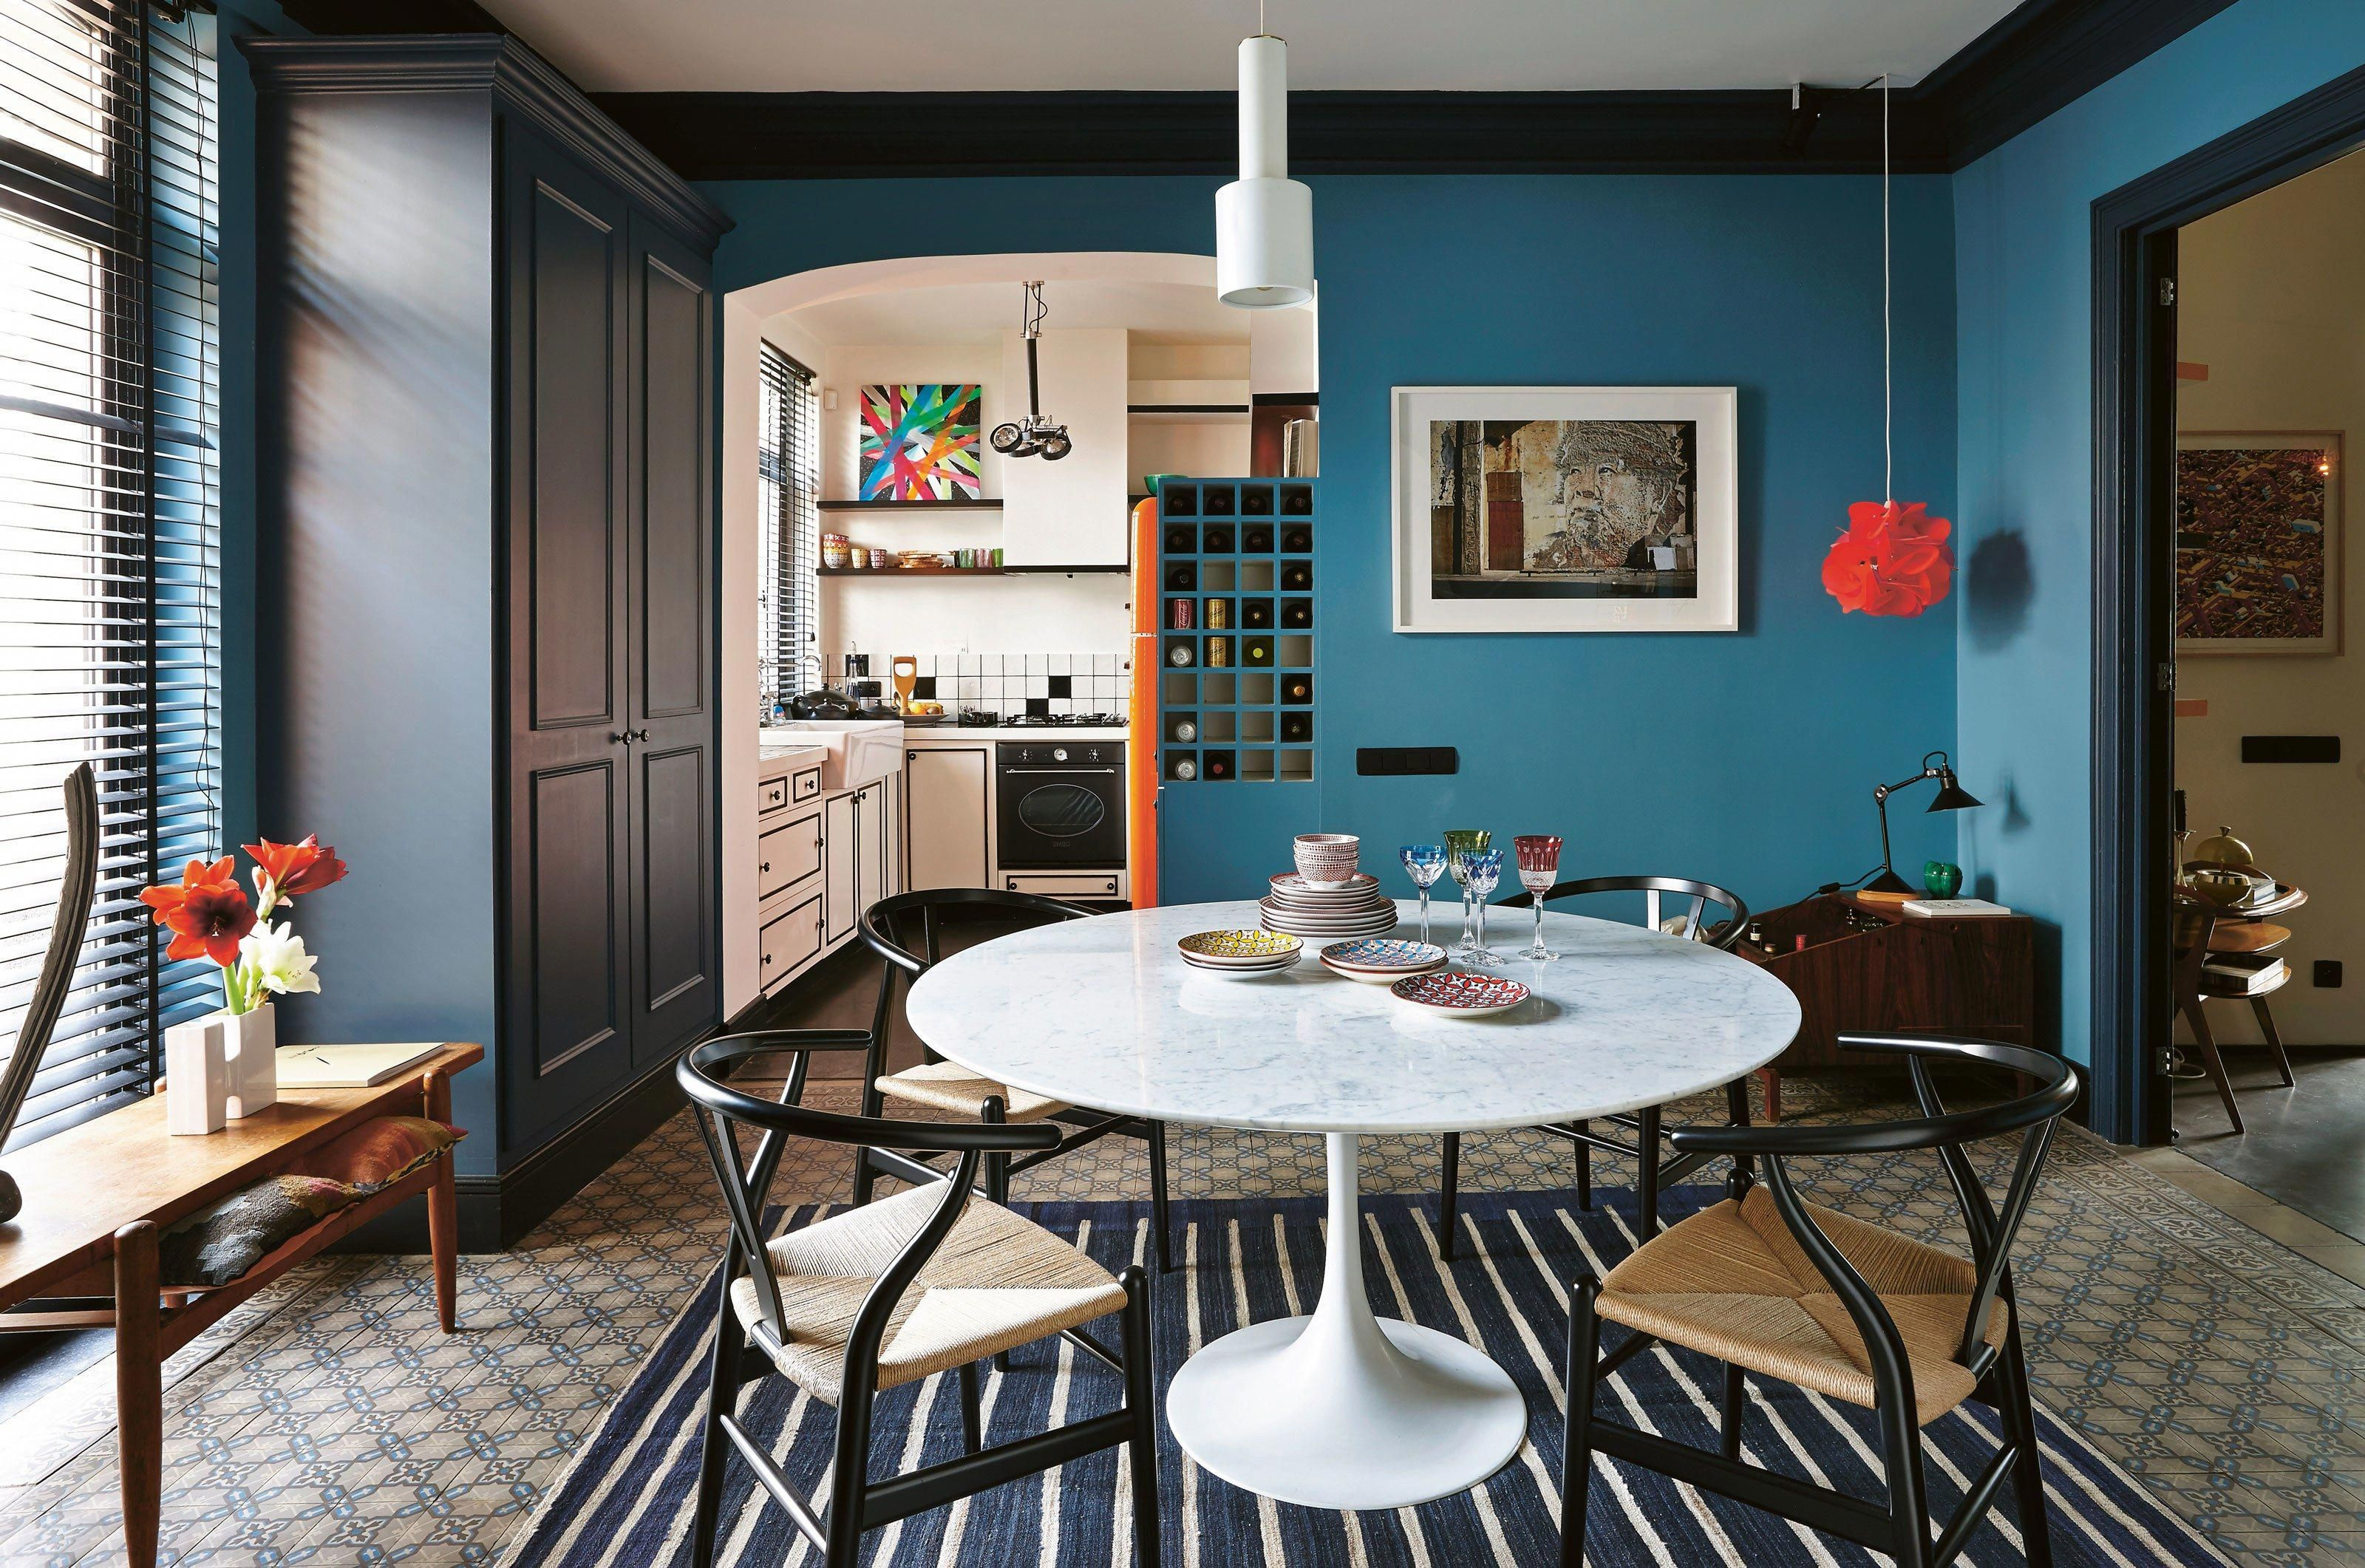 The Best Apartment Decor Ideas For A Small Apartment Eclectic